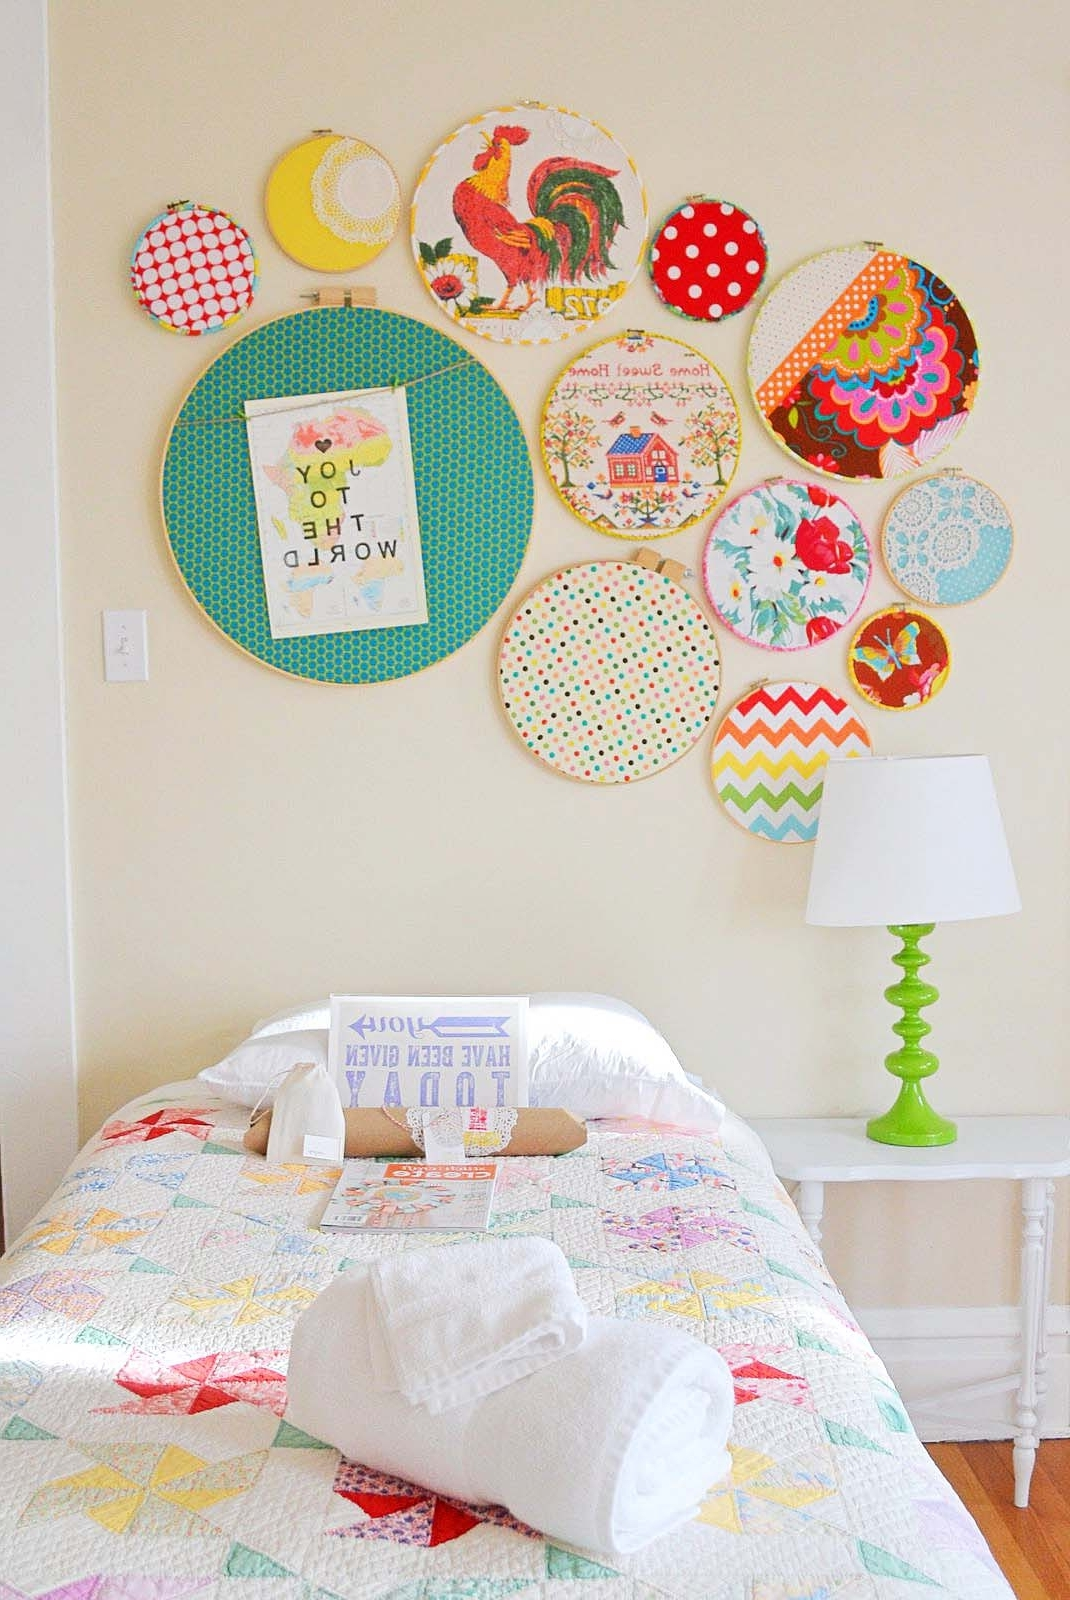 Most Recently Released Fabric Hoop Wall Art Intended For What's All The Hoopla About? – Project Nursery (View 12 of 15)